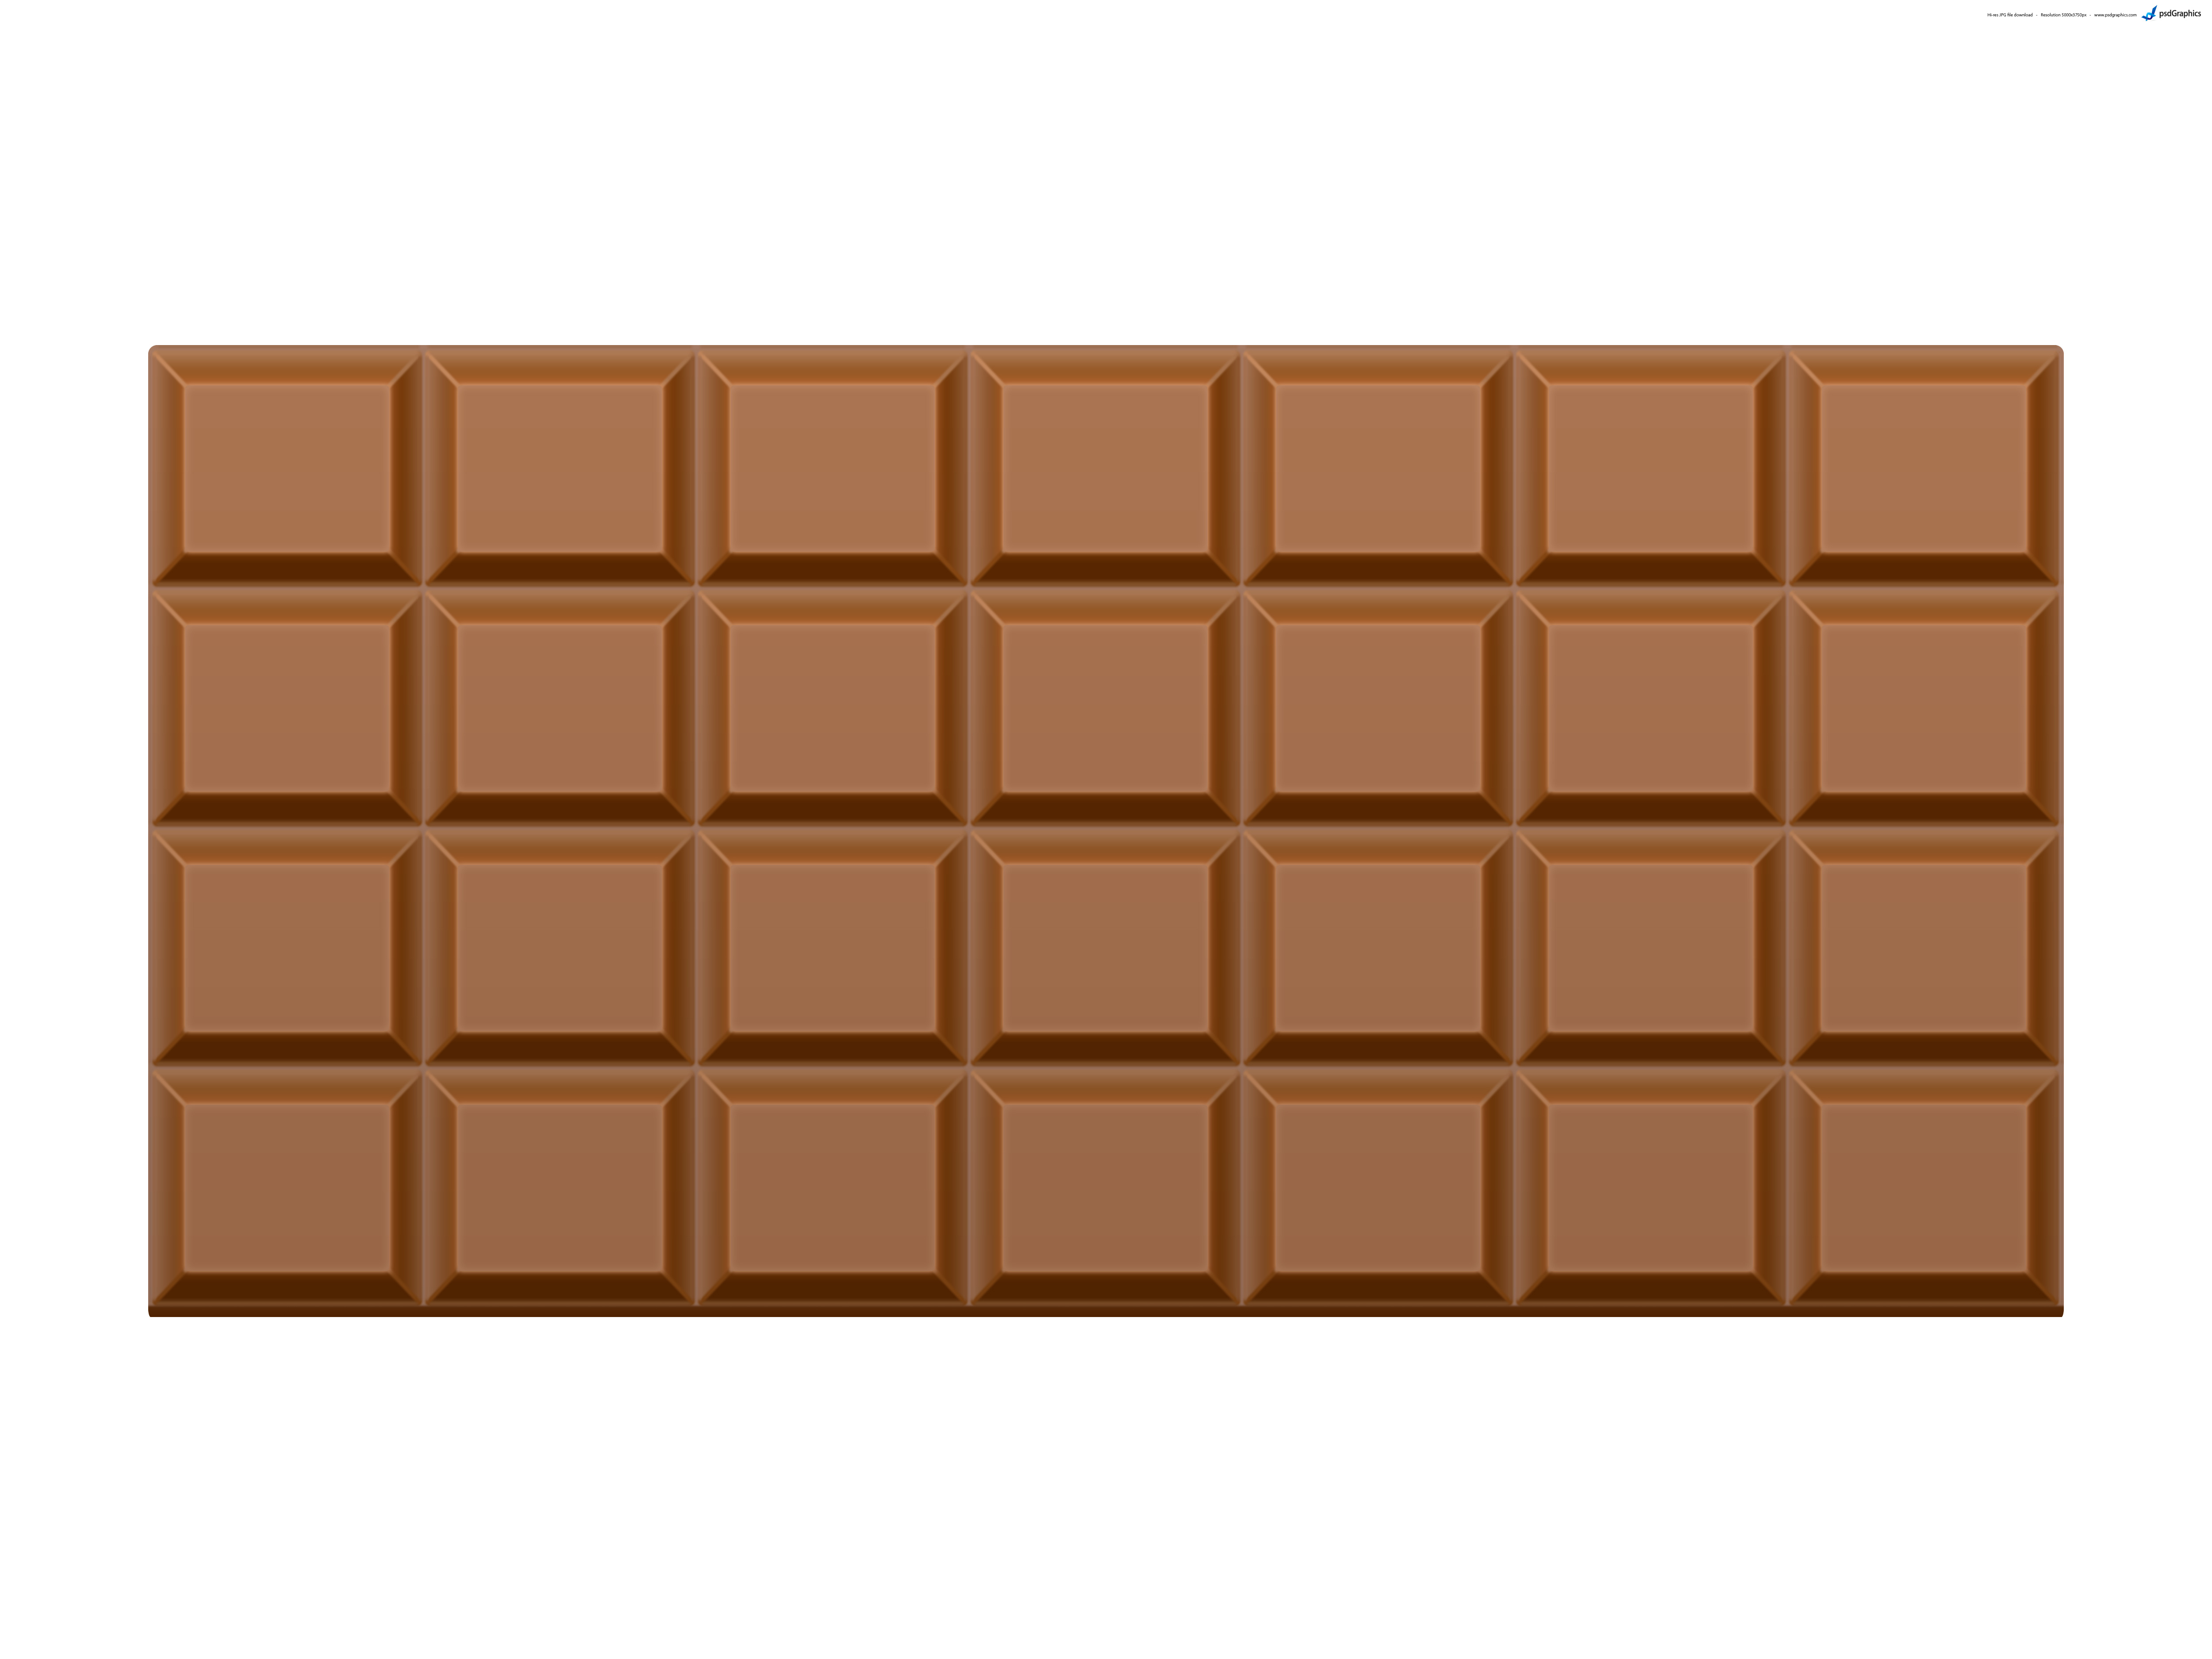 Chocolate bar 5000x3750